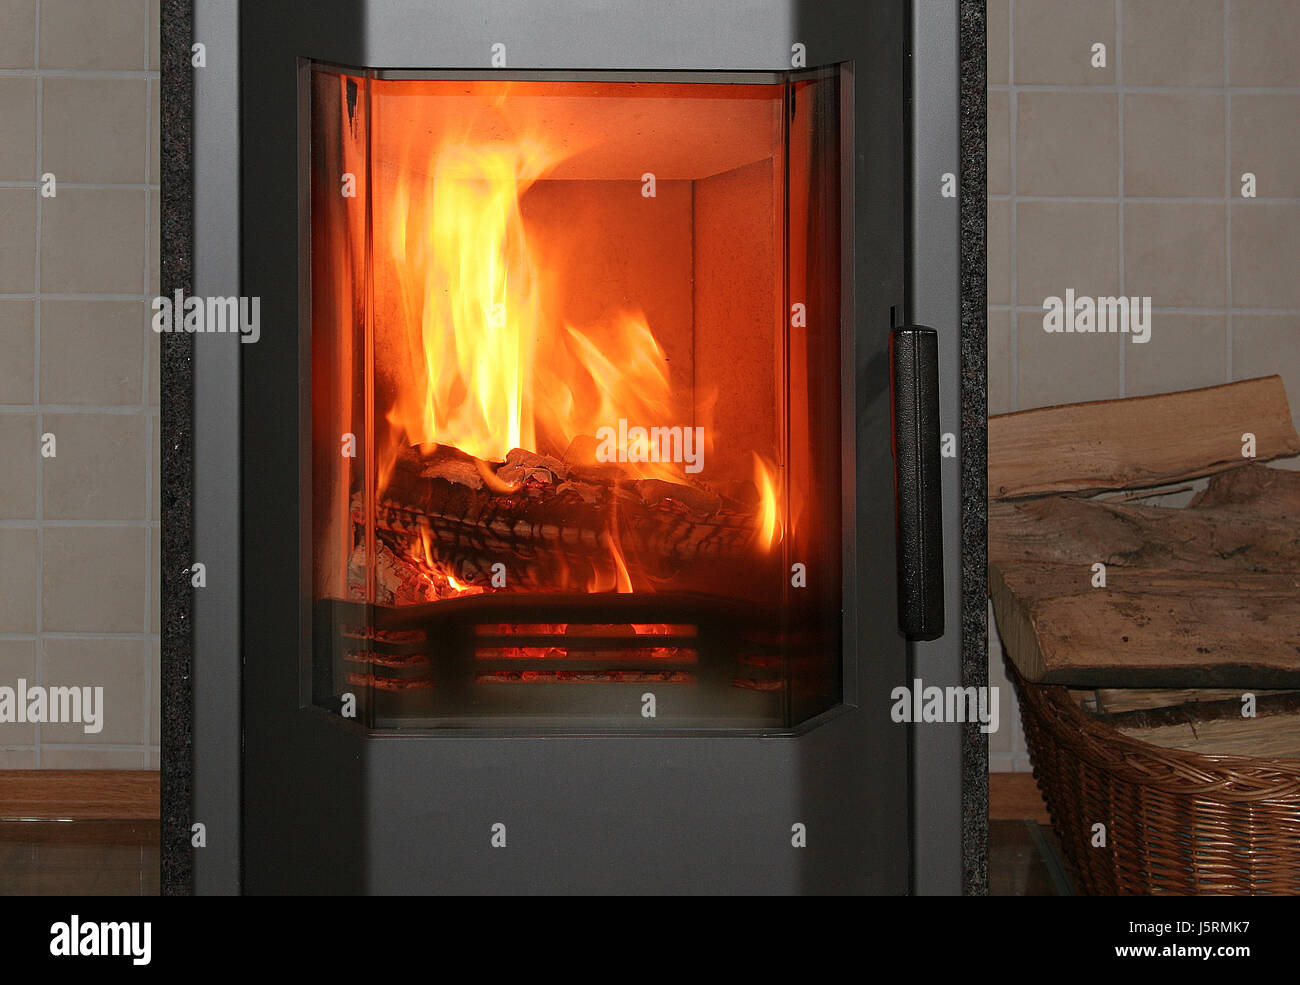 Tile Stove Stock Photos & Tile Stove Stock Images - Alamy